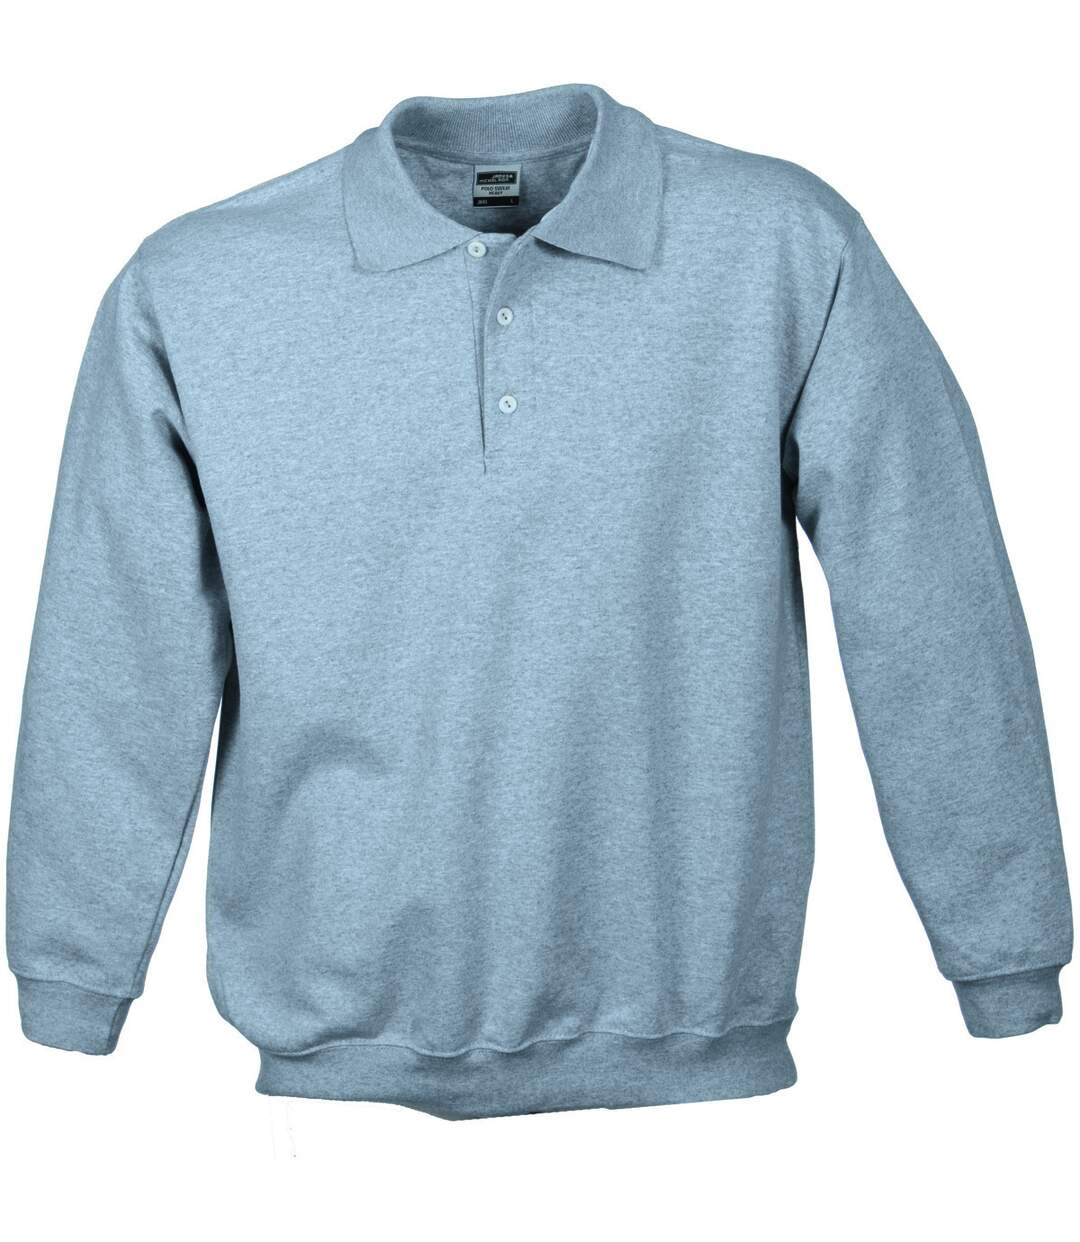 Sweat-shirt col polo - homme - JN041 - gris